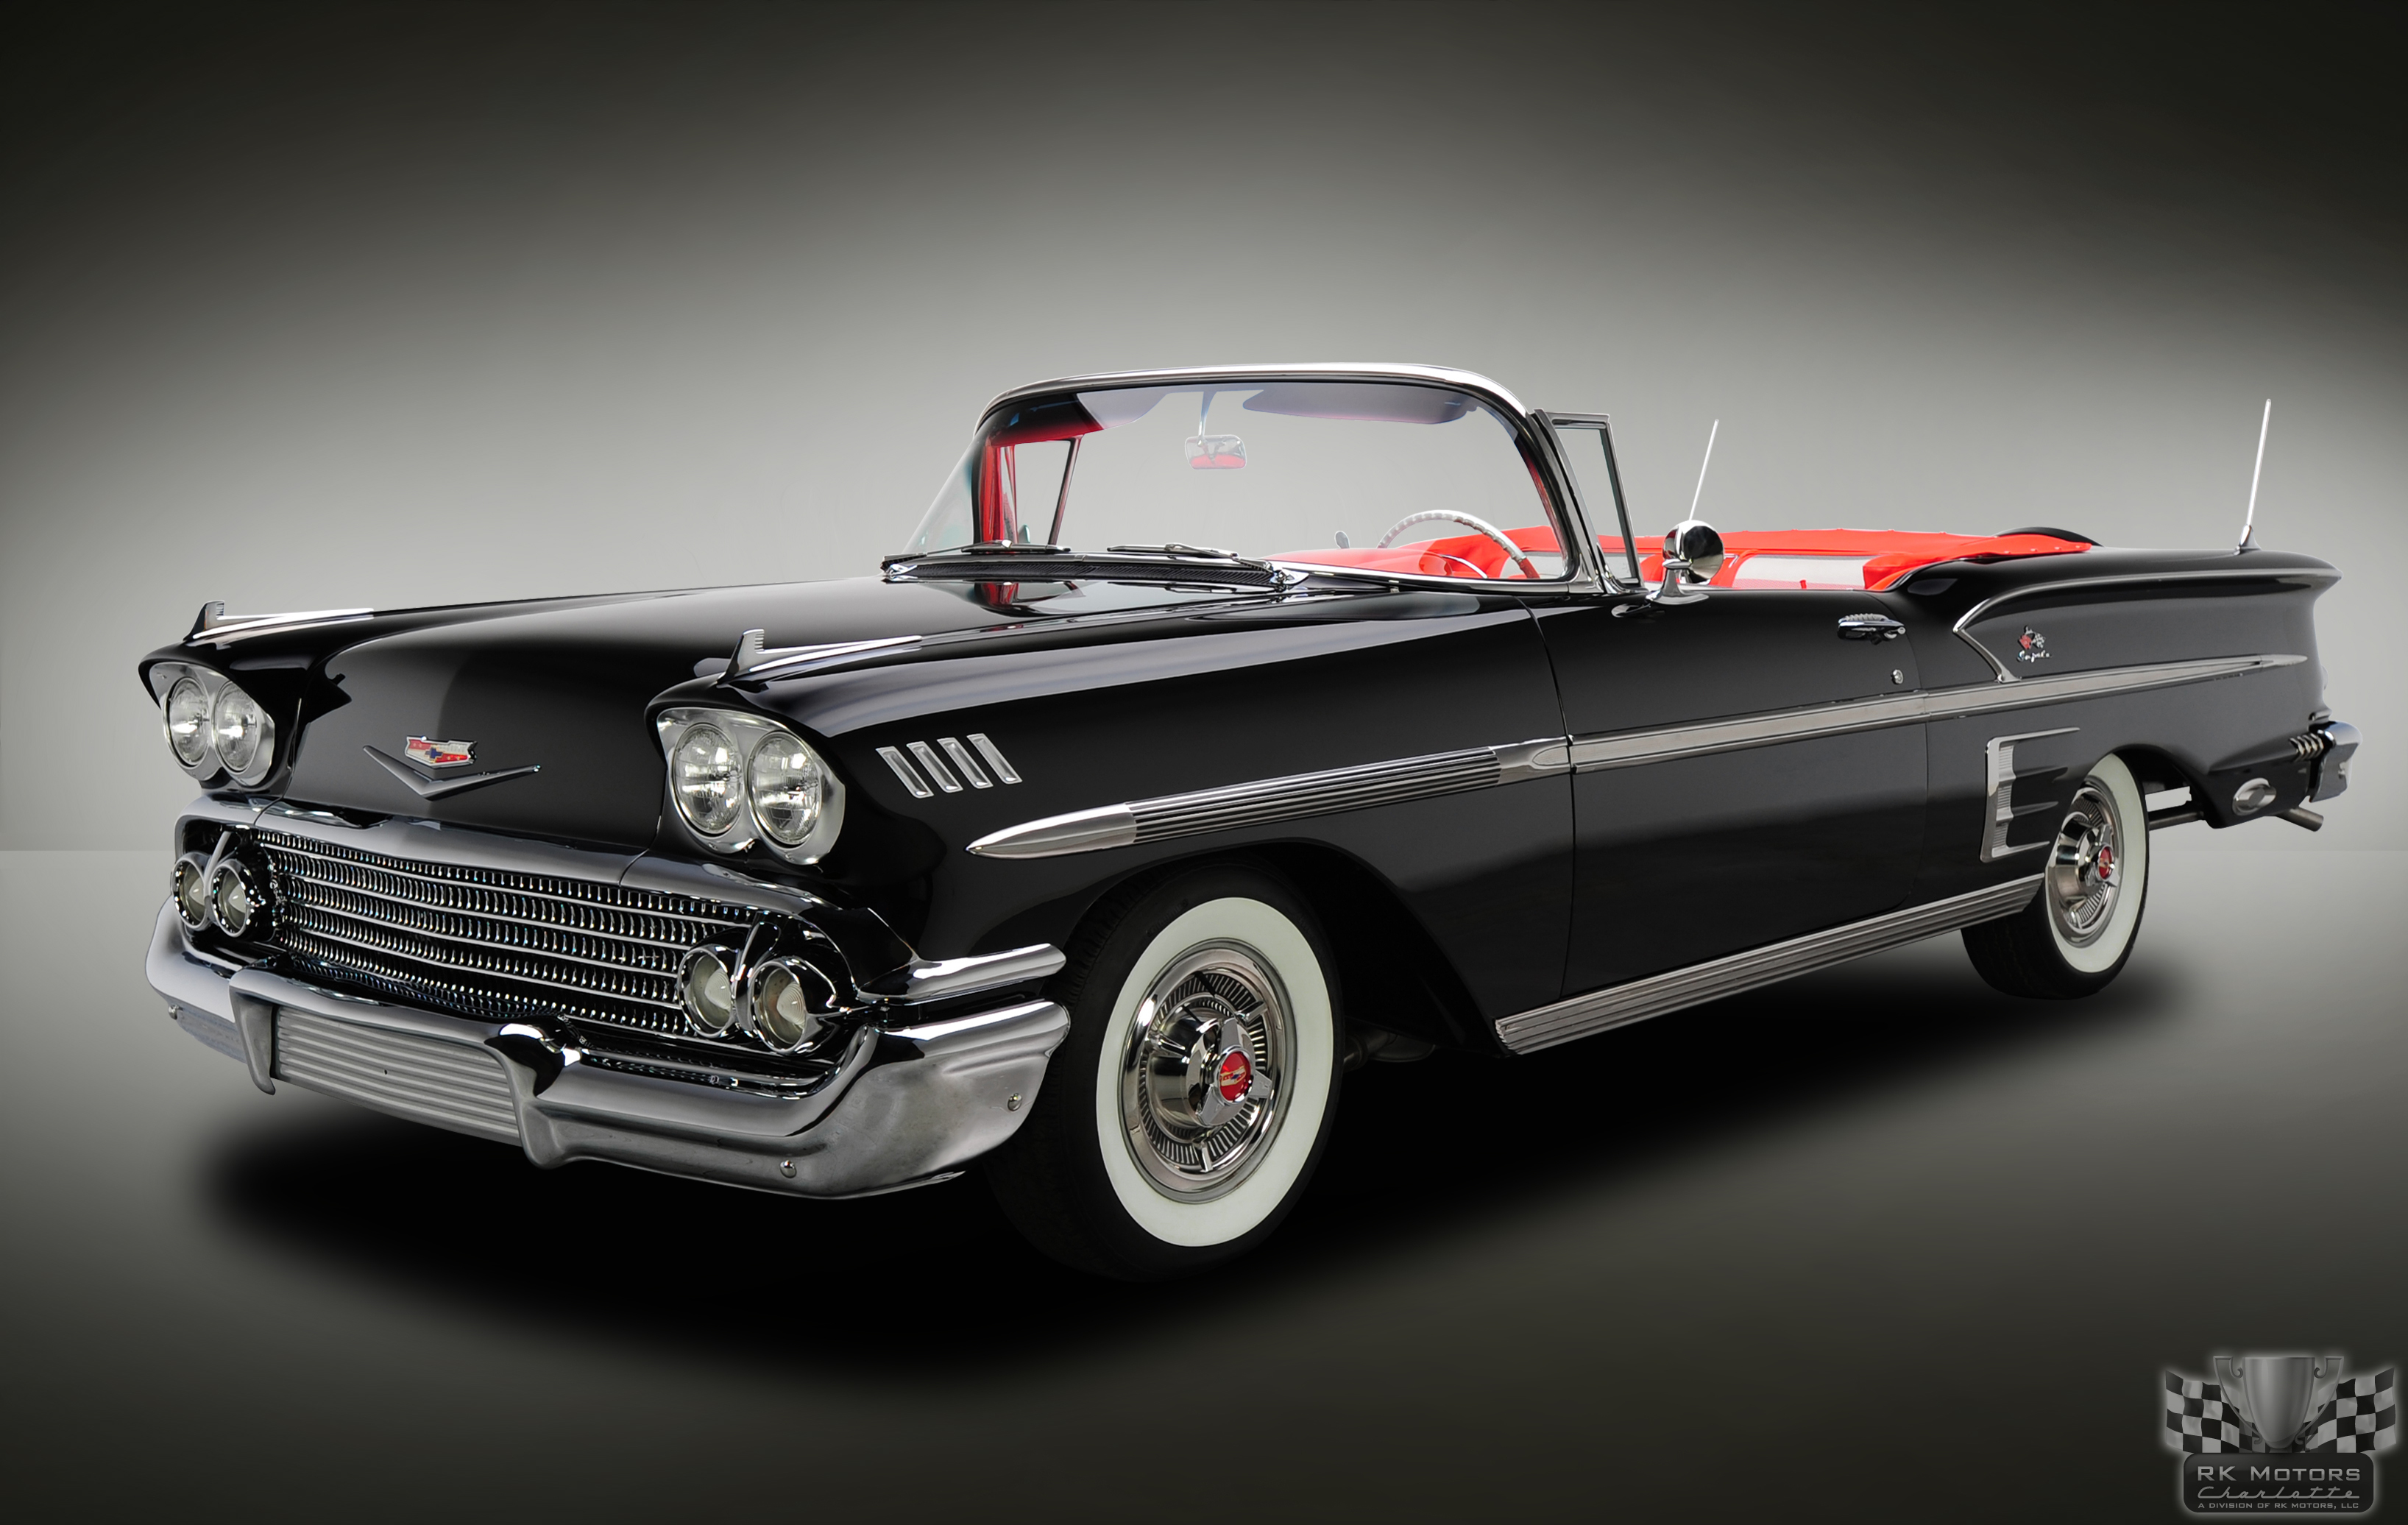 CHEVROLET IMPALA CONVERTIBLE TRIPOWER Classic Cars - Classic chevy cars